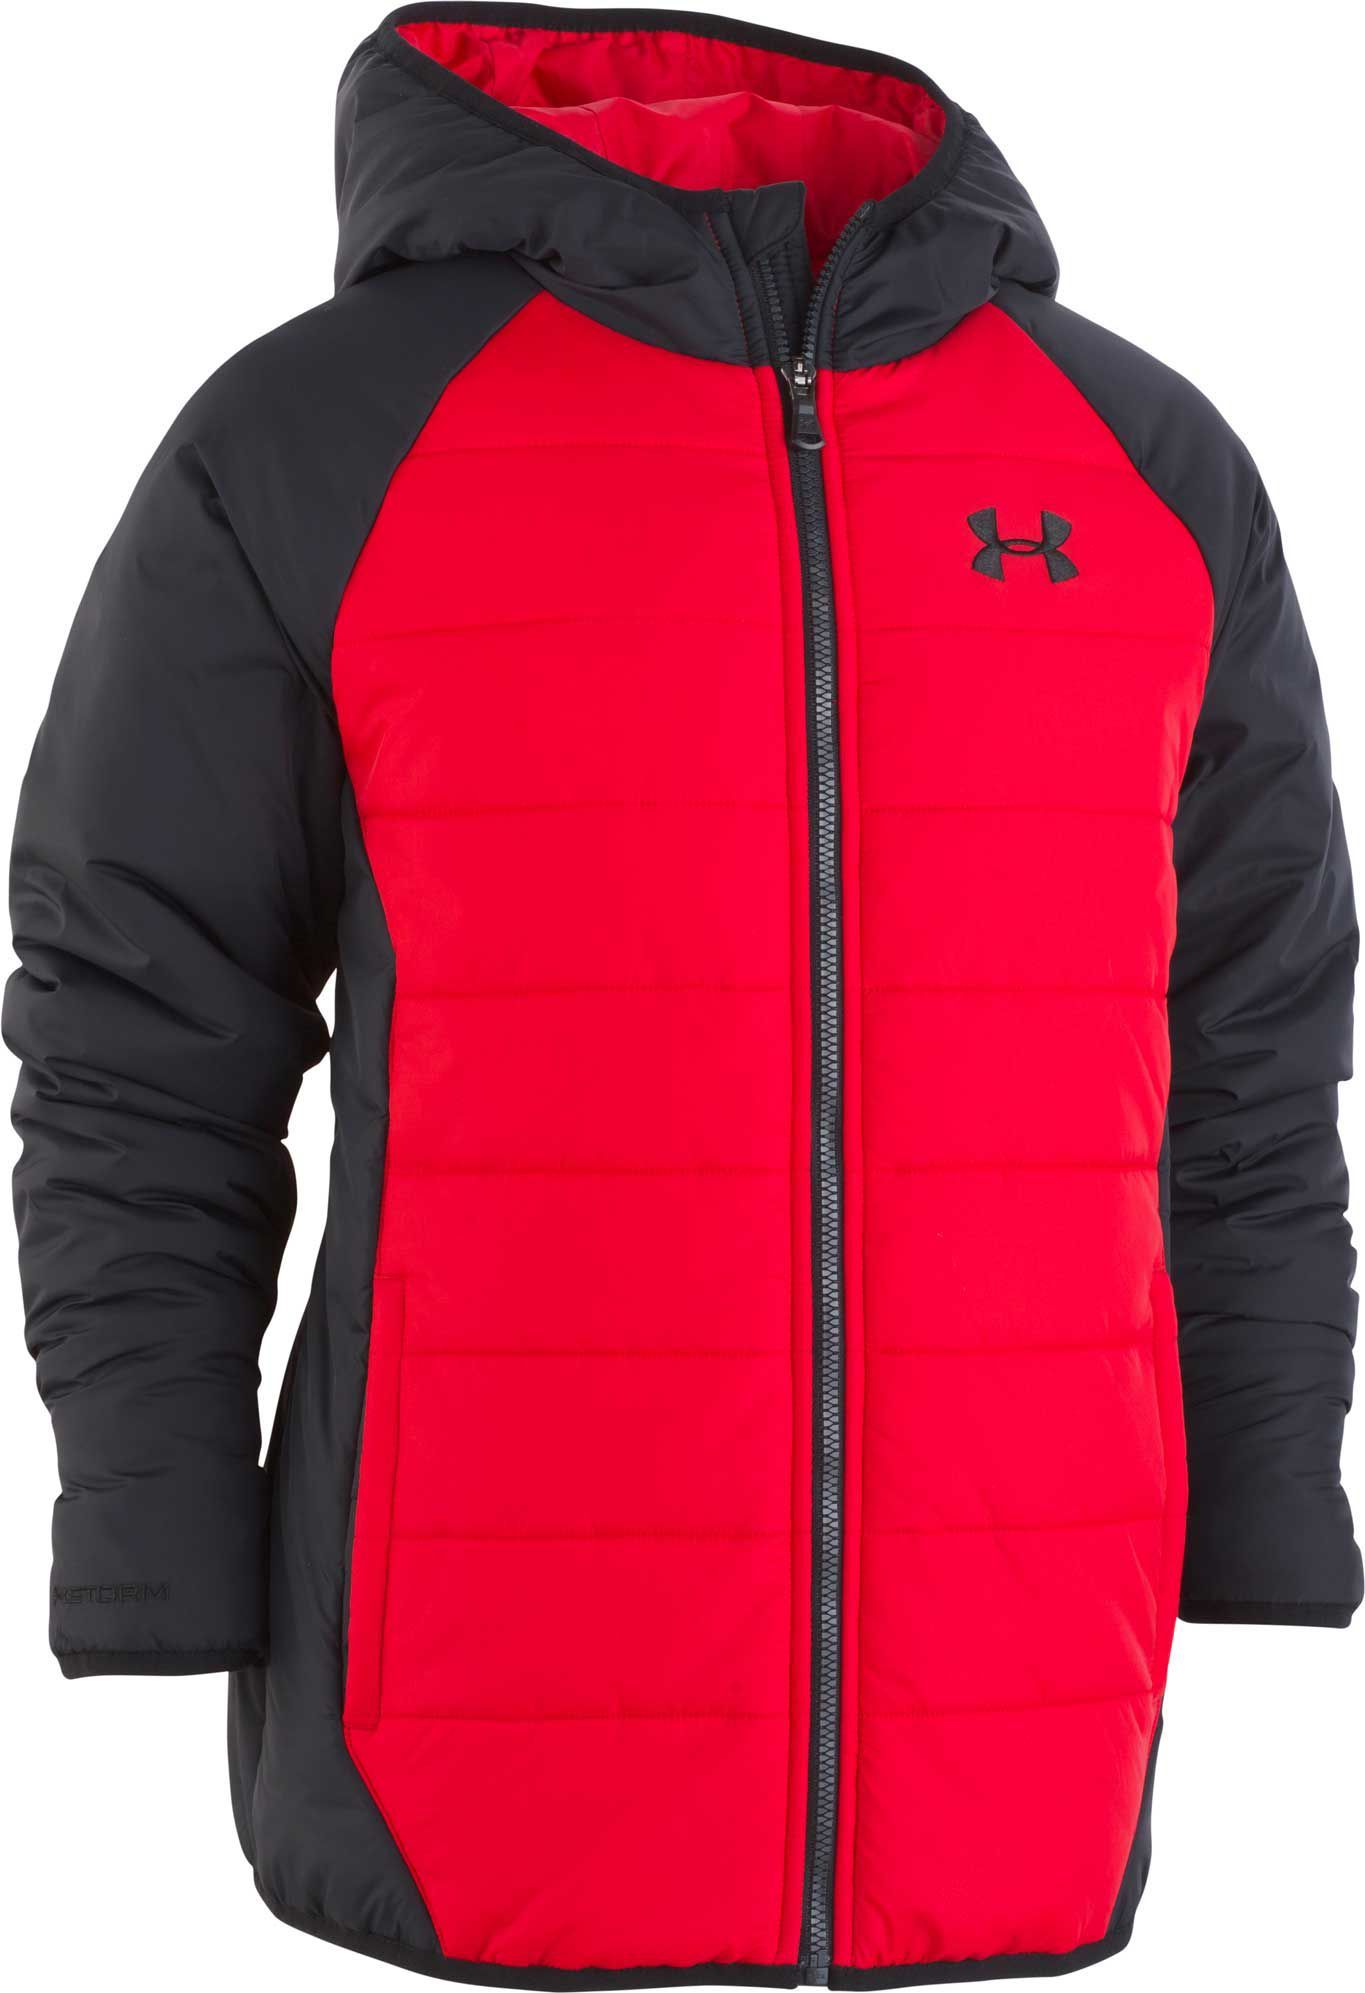 6757828f60 Under Armour Toddler Boys' Tuckerman Puffer Jacket | Products ...